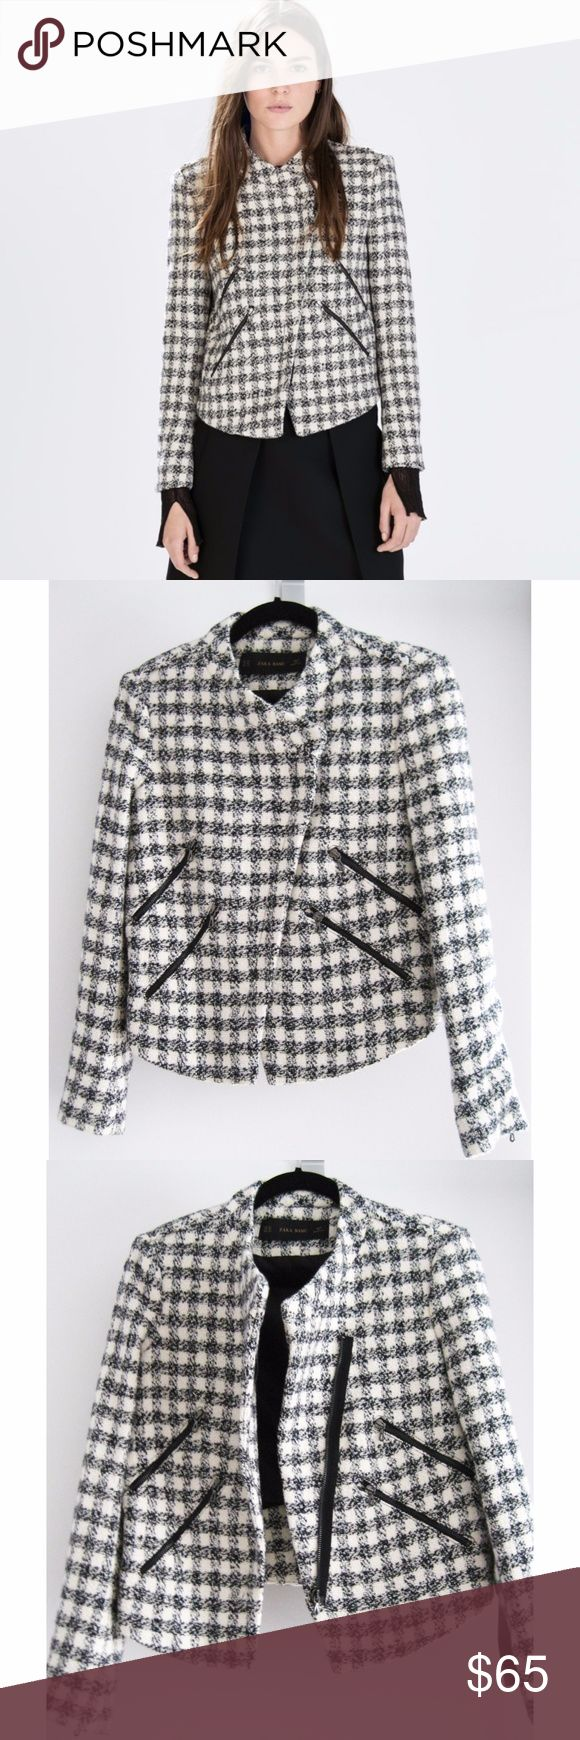 "NWT Zara Tweed Checkered Moto Jacket Sz XS A cozy black and white checkered tweed moto jacket with an asymmetrical center front zip closure. Features 4 front diagonal zip pockets, 1 zipper on each back sleeve, and frayed details on the shoulder and back. Fully lined. New with tags, never worn. Smoke/pet-free home. Free free to ask questions! Open to reasonable offers! All images are my own except for the 2nd photo. Credited to Zara online image.  Across Shoulder (ah seam to ah seam): 16""…"